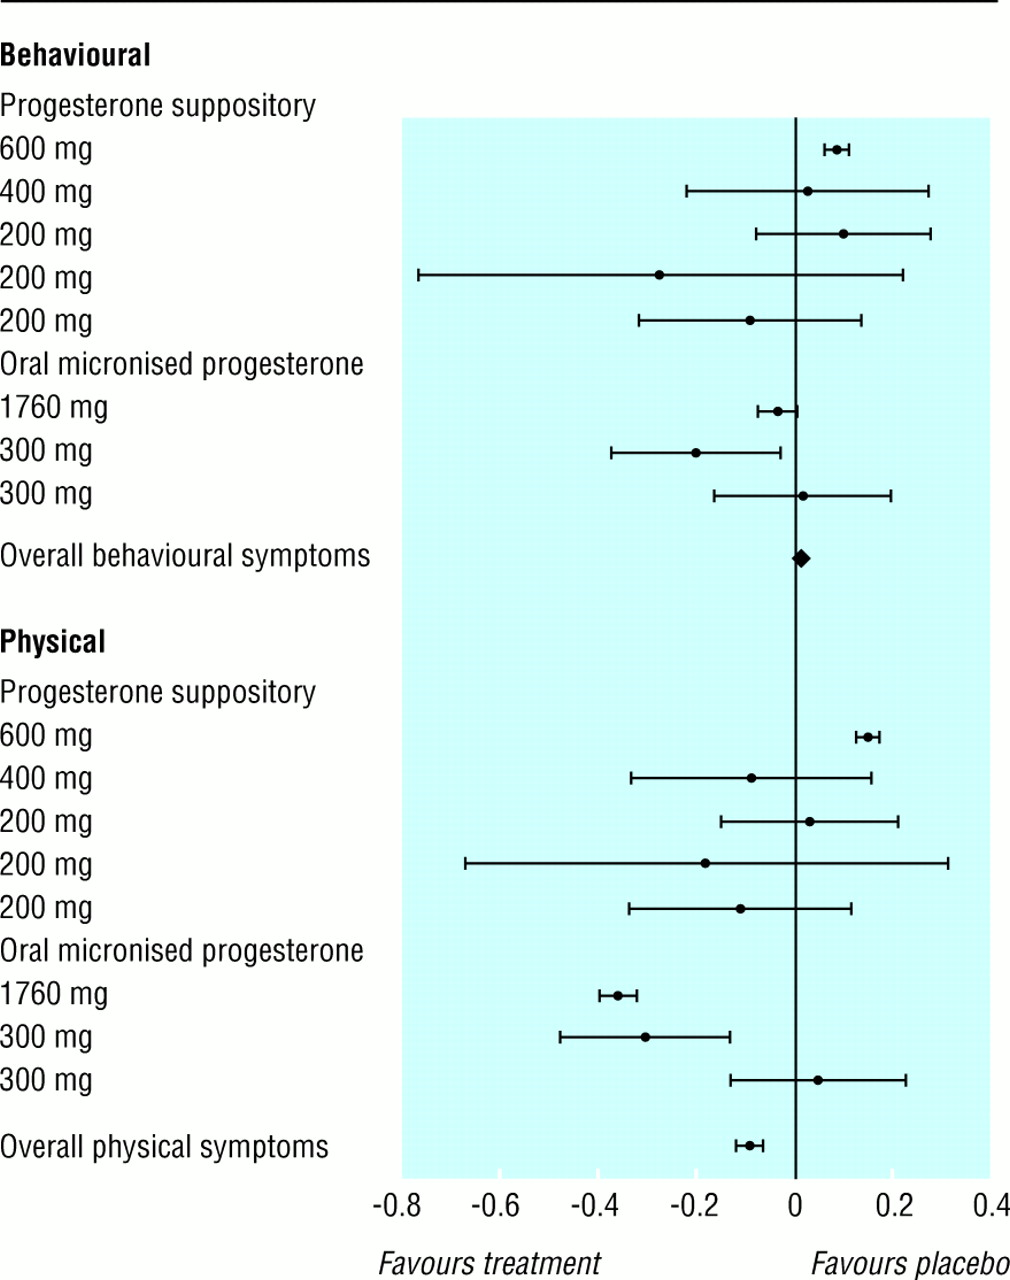 Efficacy of progesterone and progestogens in management of